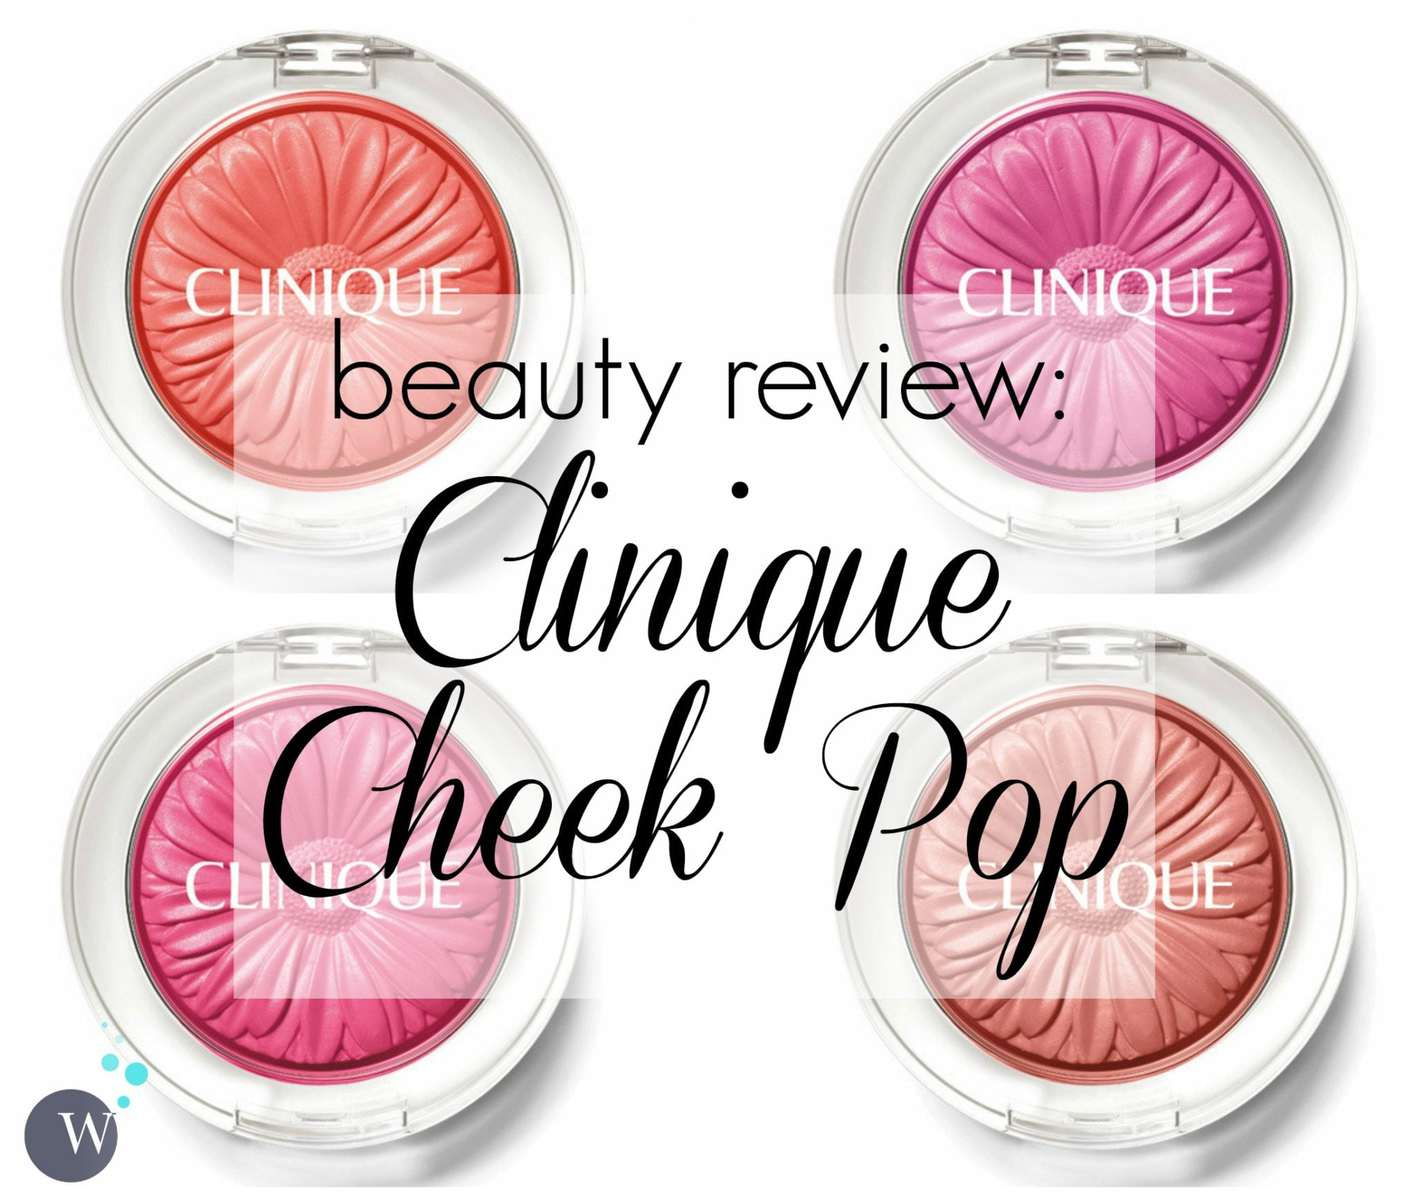 A review of Clinique Cheek Pop on Wardrobe Oxygen by Phyllis Bourne